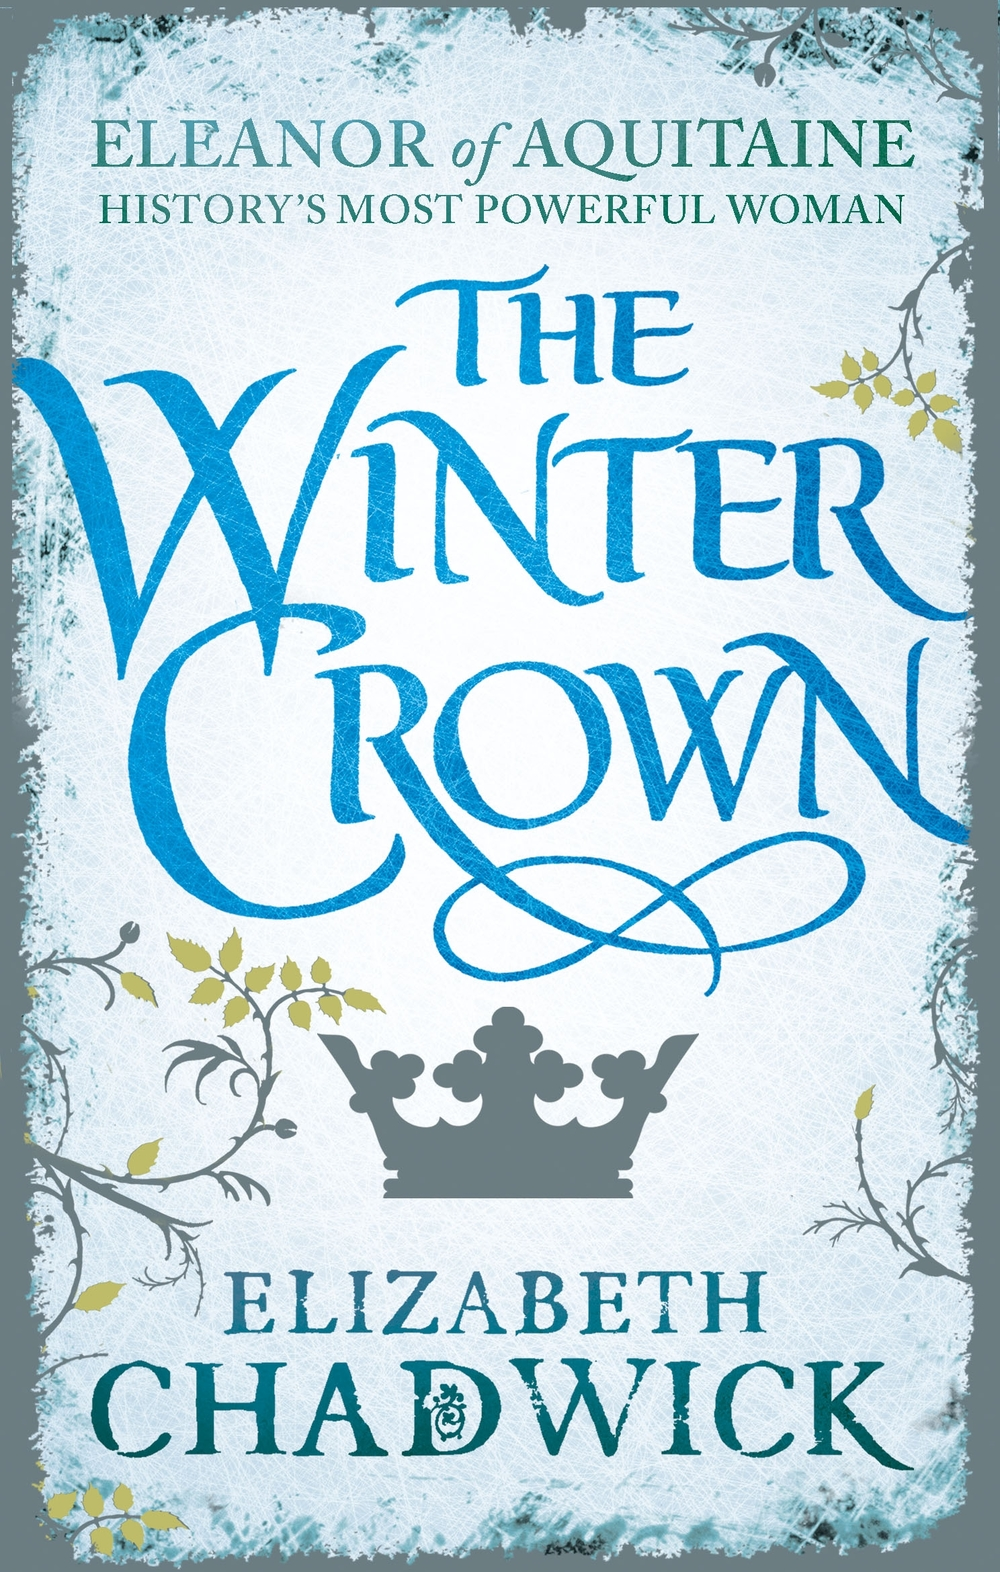 THE WINTER CROWN   Medieval fiction, 496 pages.    Sphere, September 2014  Second of the Eleanor of Aquitaine trilogy. Winter 1154: Eleanor, Queen of England, is biding her time. As her sons become young men, frustrated at Henry's hoarding of power, Eleanor is forced into a rebellion of devastating consequences.